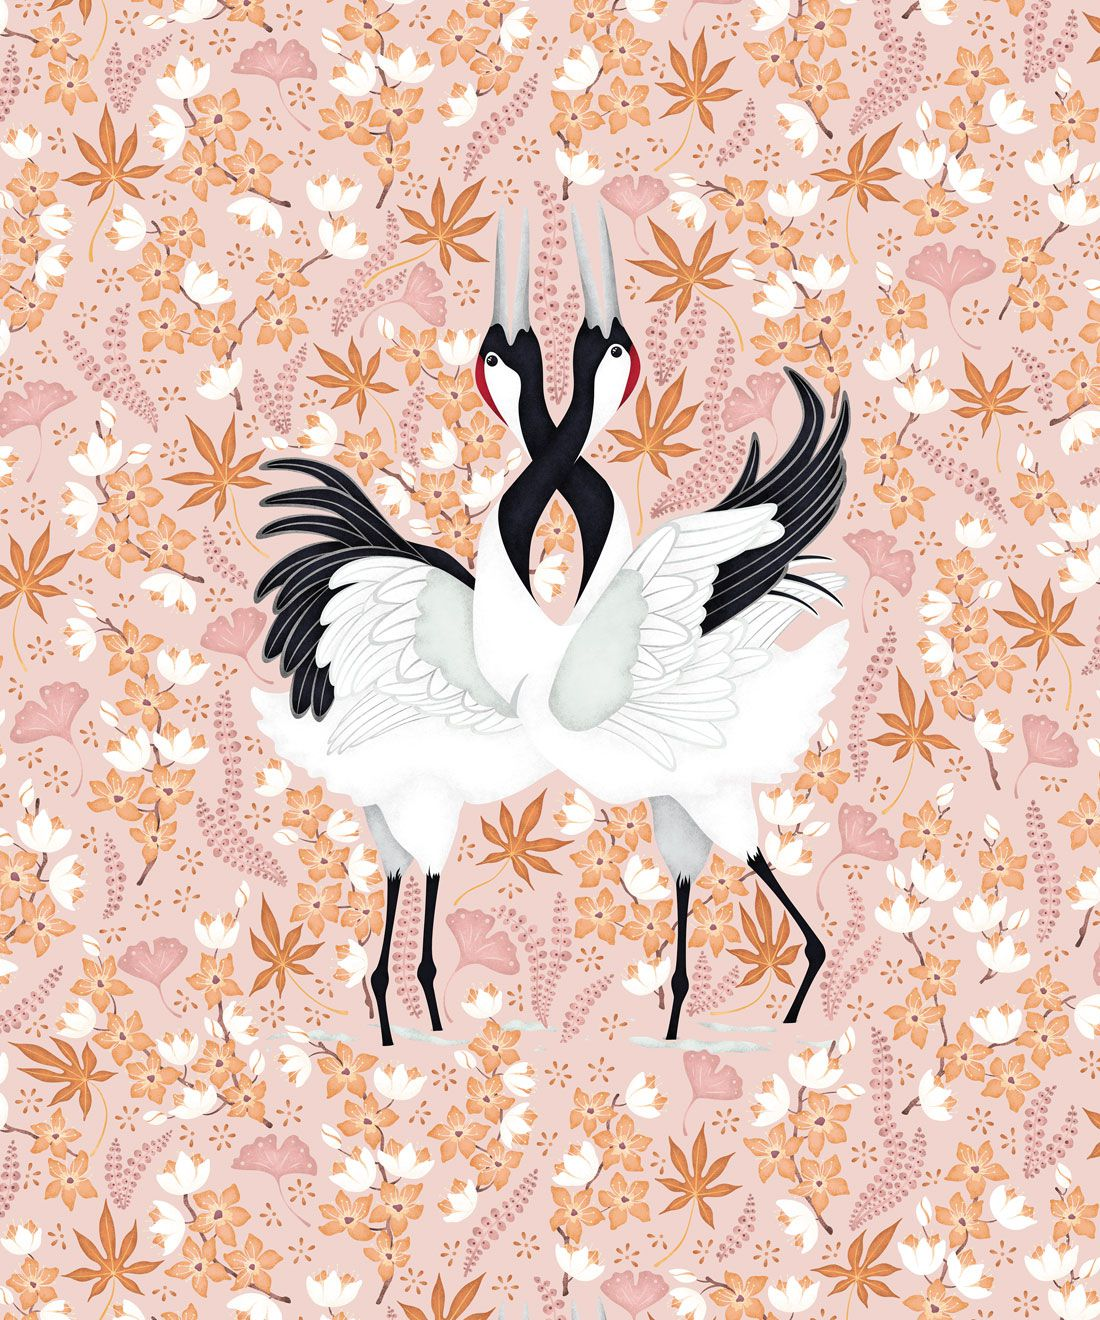 Japanese Cranes Wallpaper